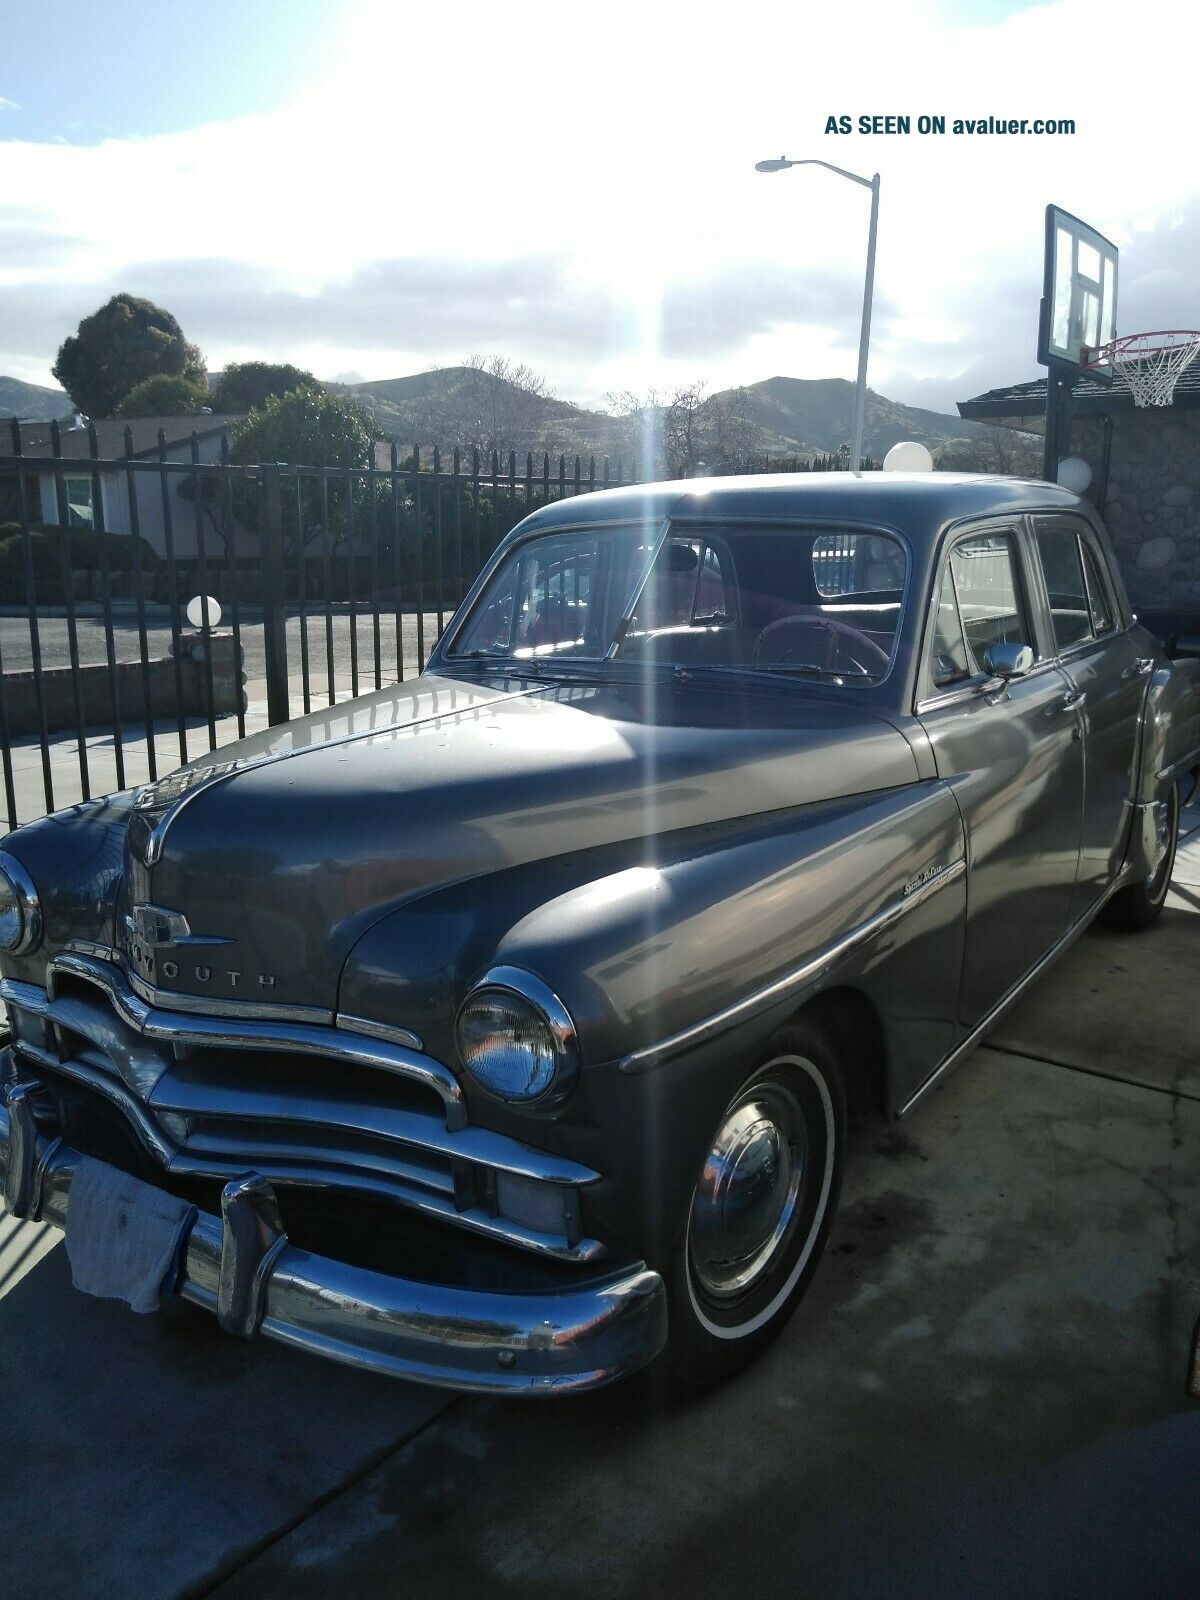 1950 Plymouth Special Deluxe 4 dr.  gray,  conv.  to 12 volt